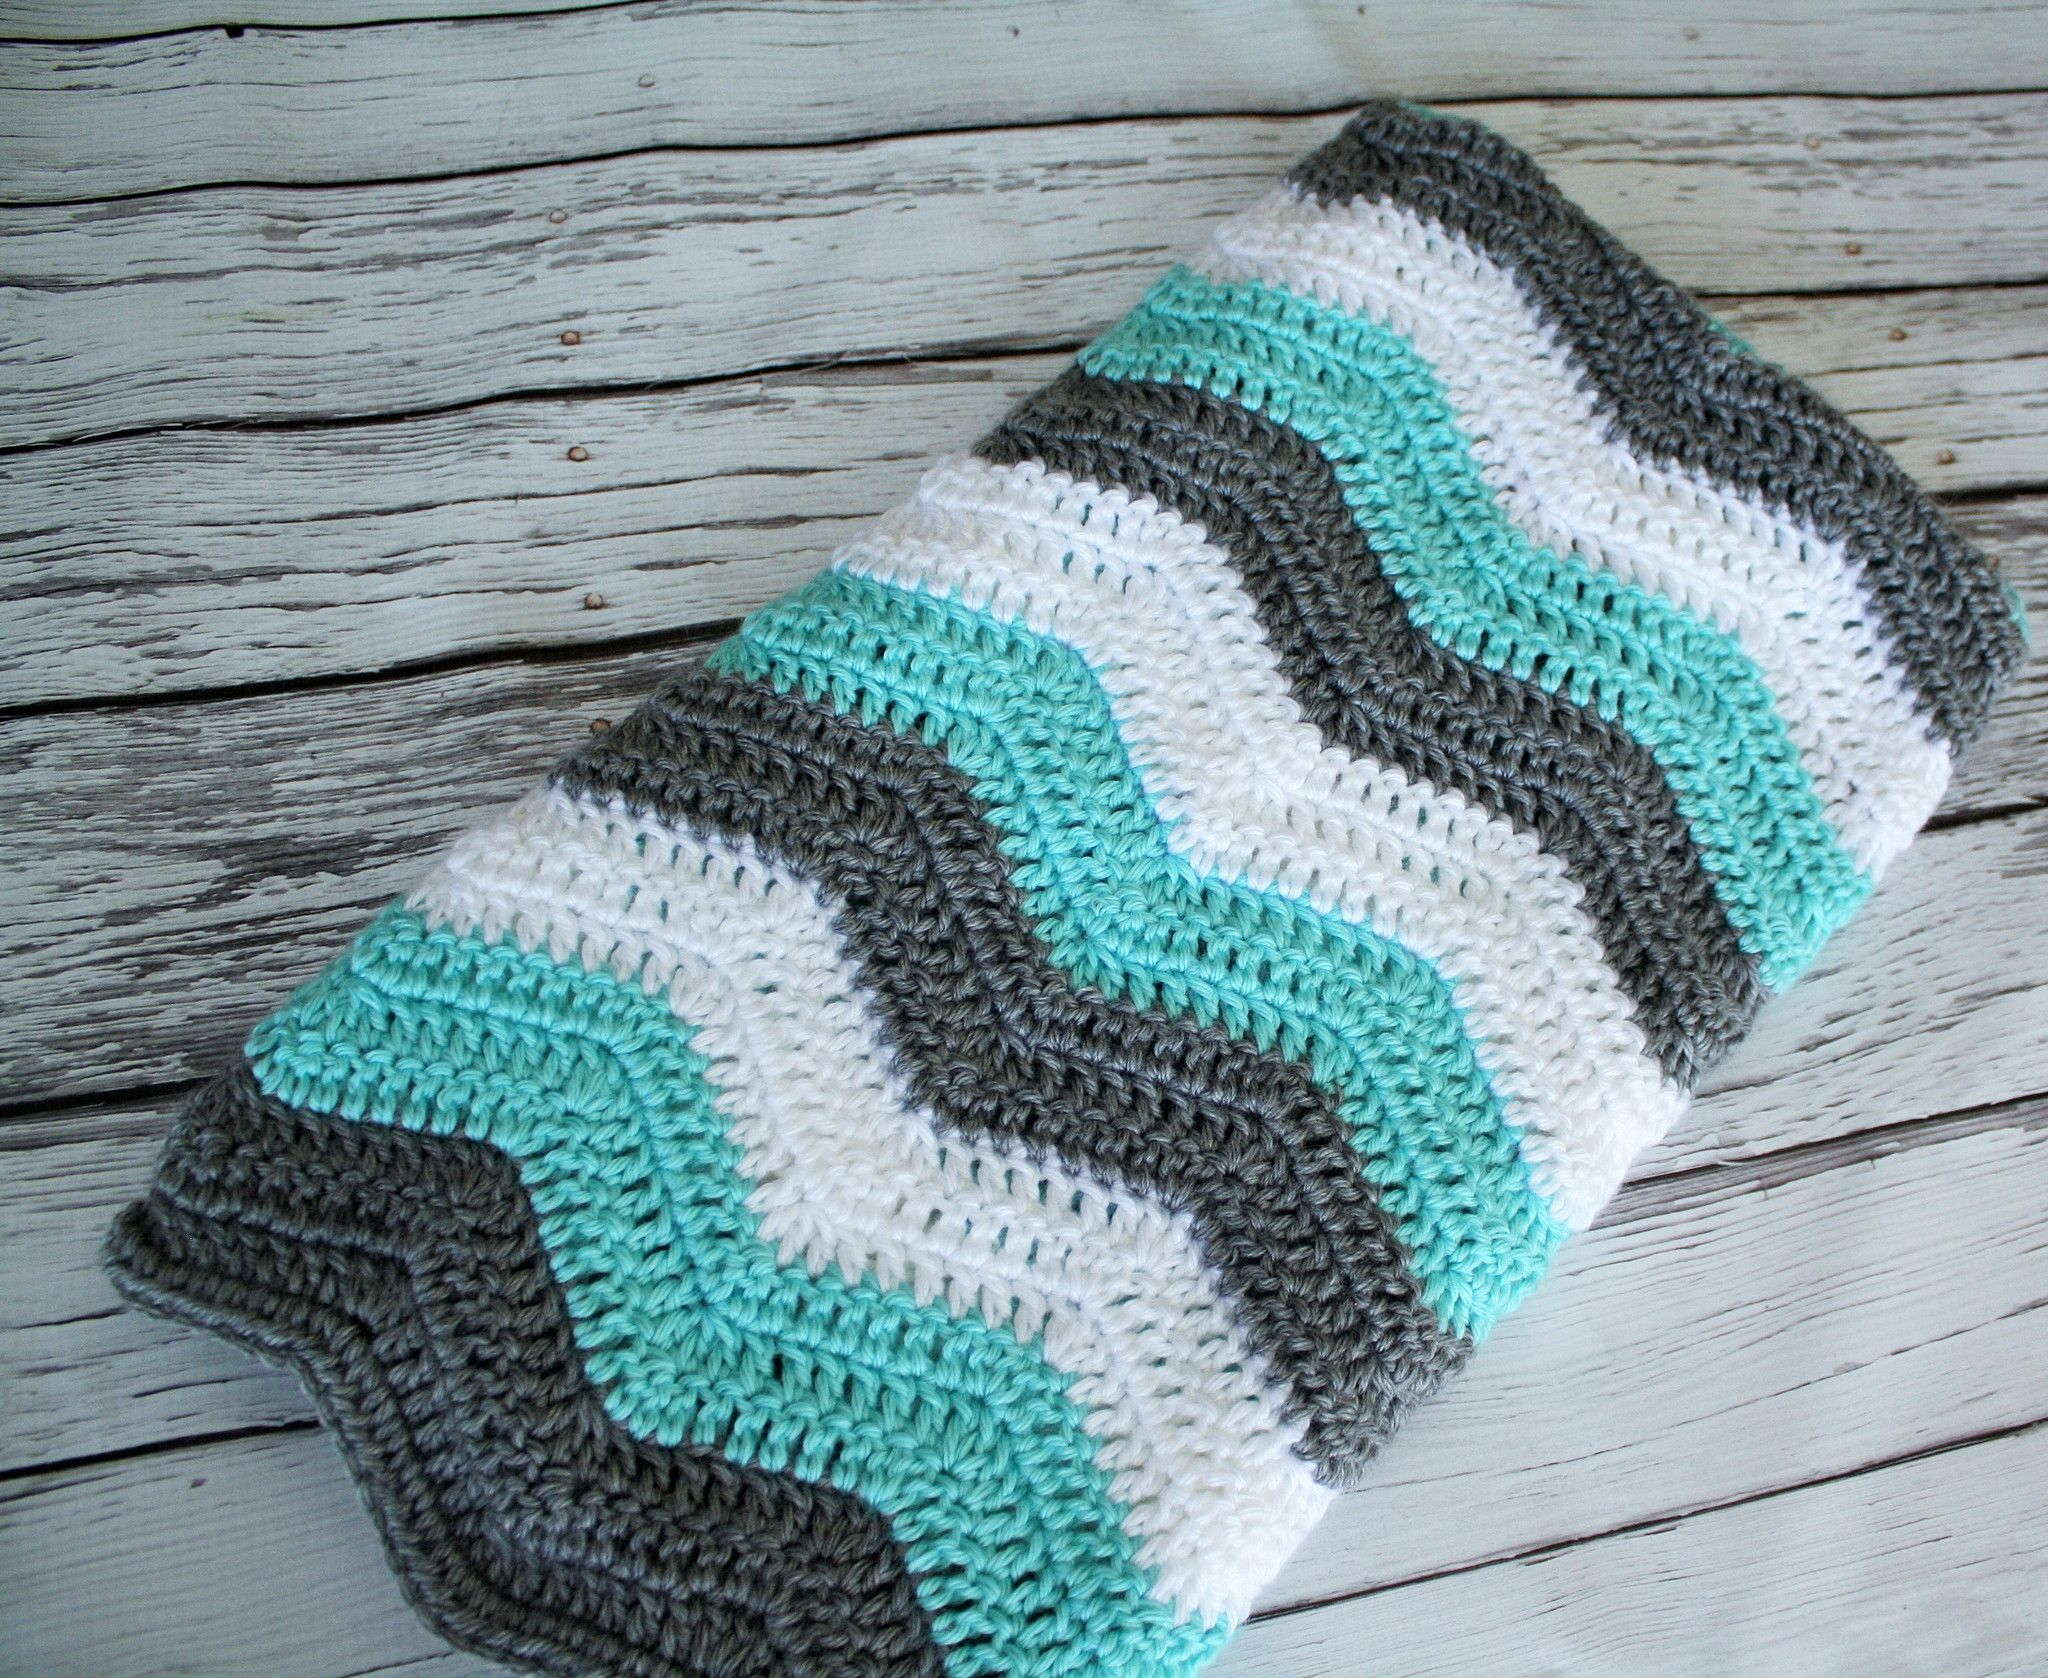 Teal, Grey and White Chevron Blanket | Chevron blanket, Teal and ...